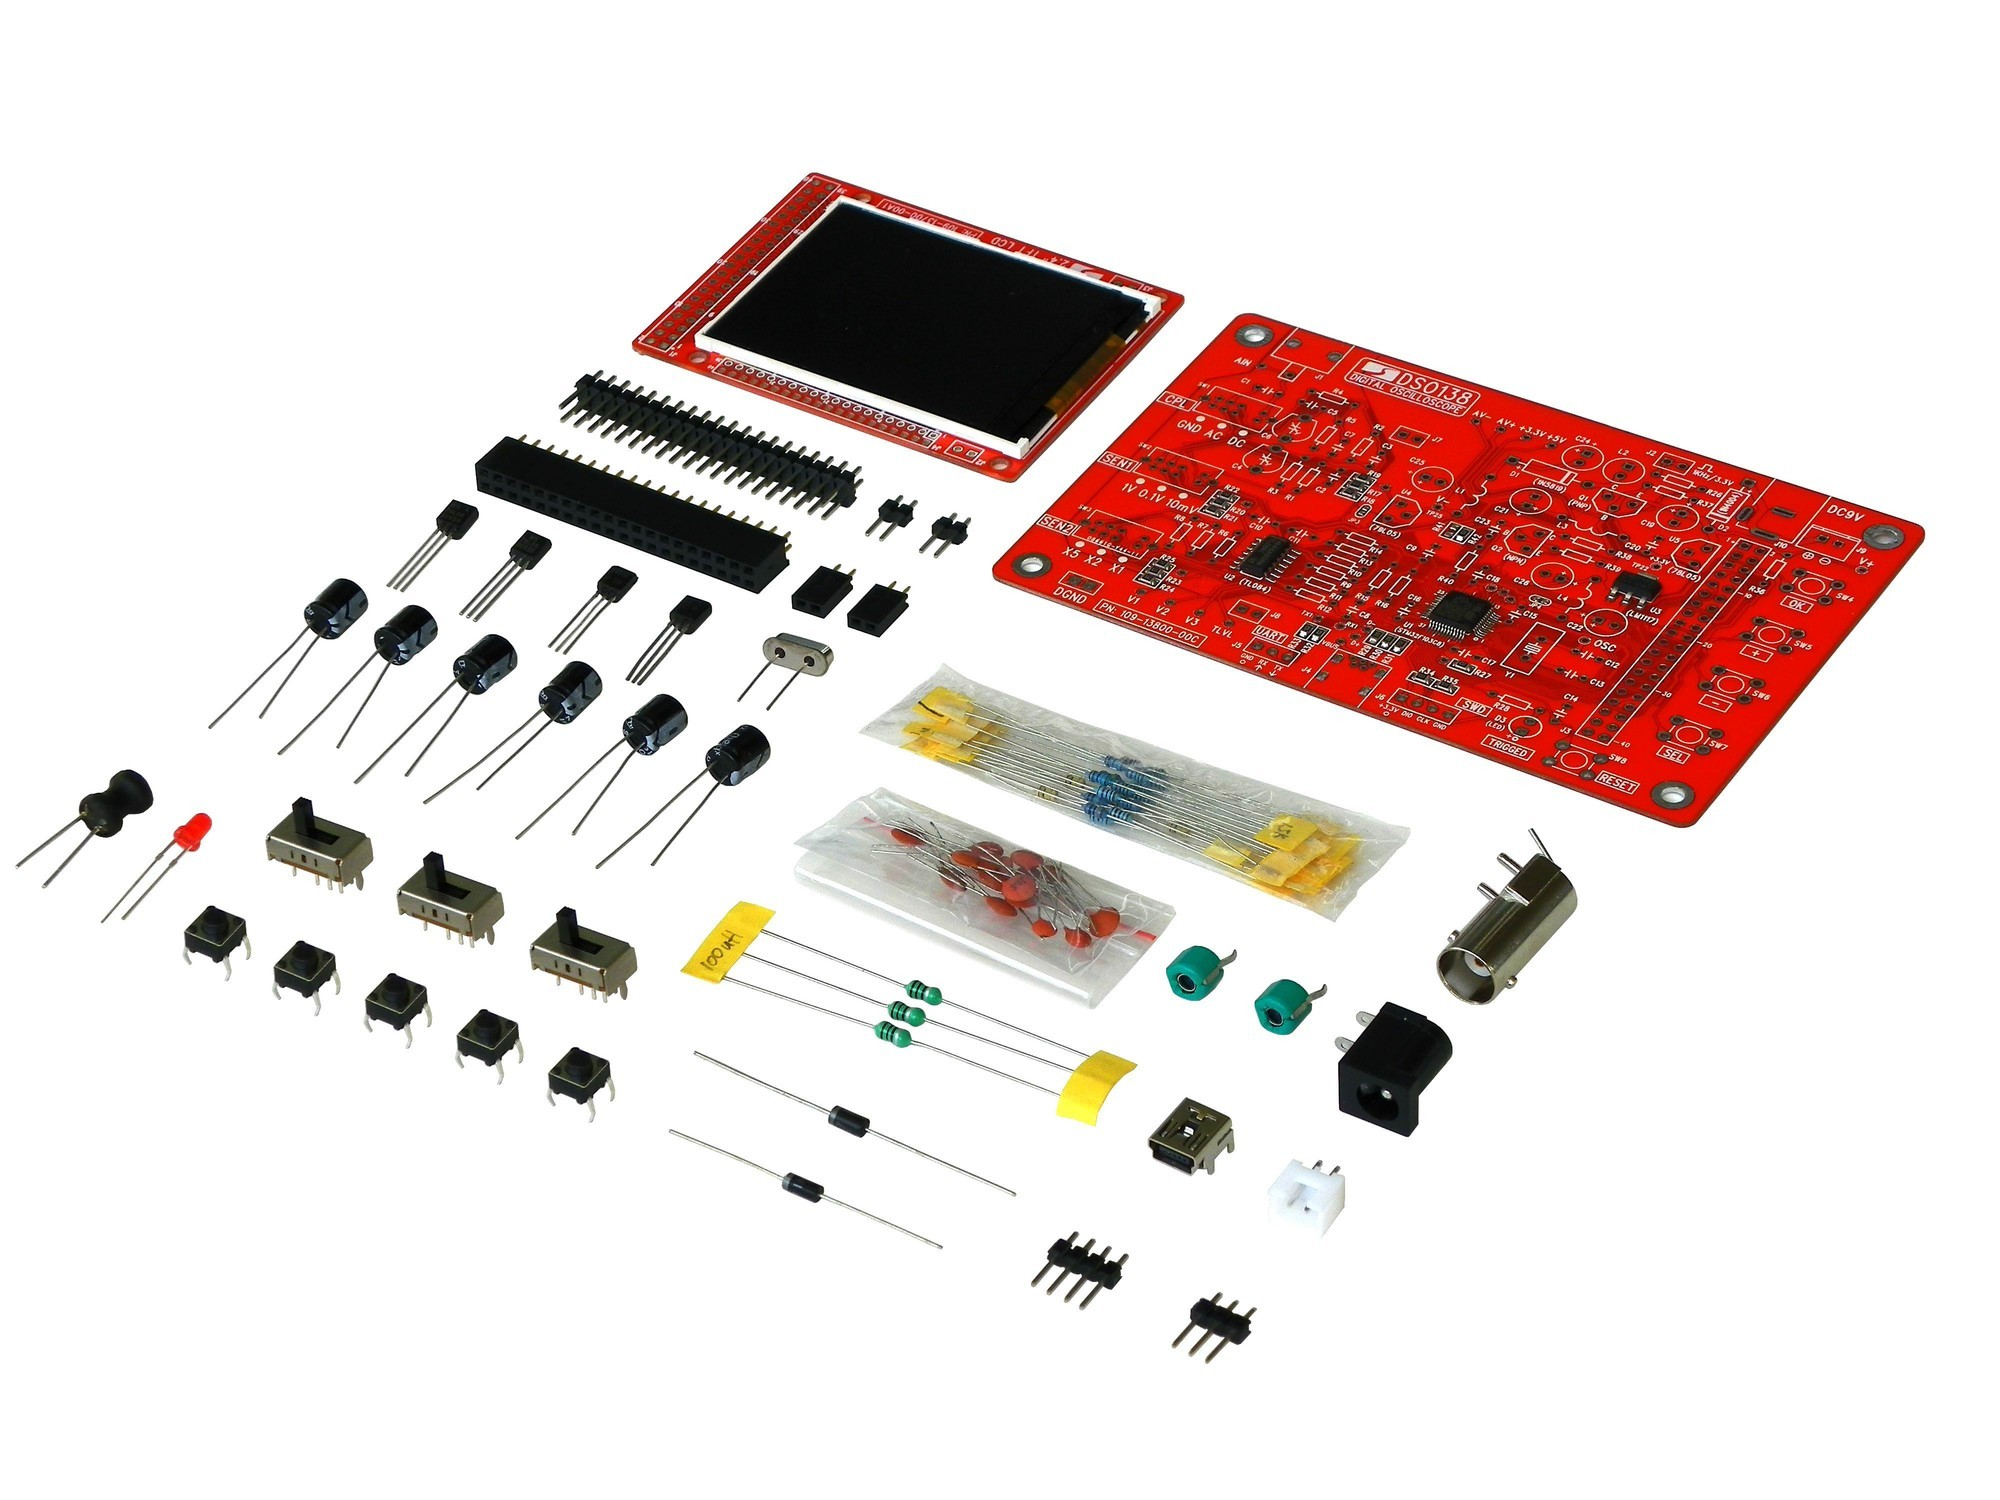 DSO138 Oscilloscope DIY Kit